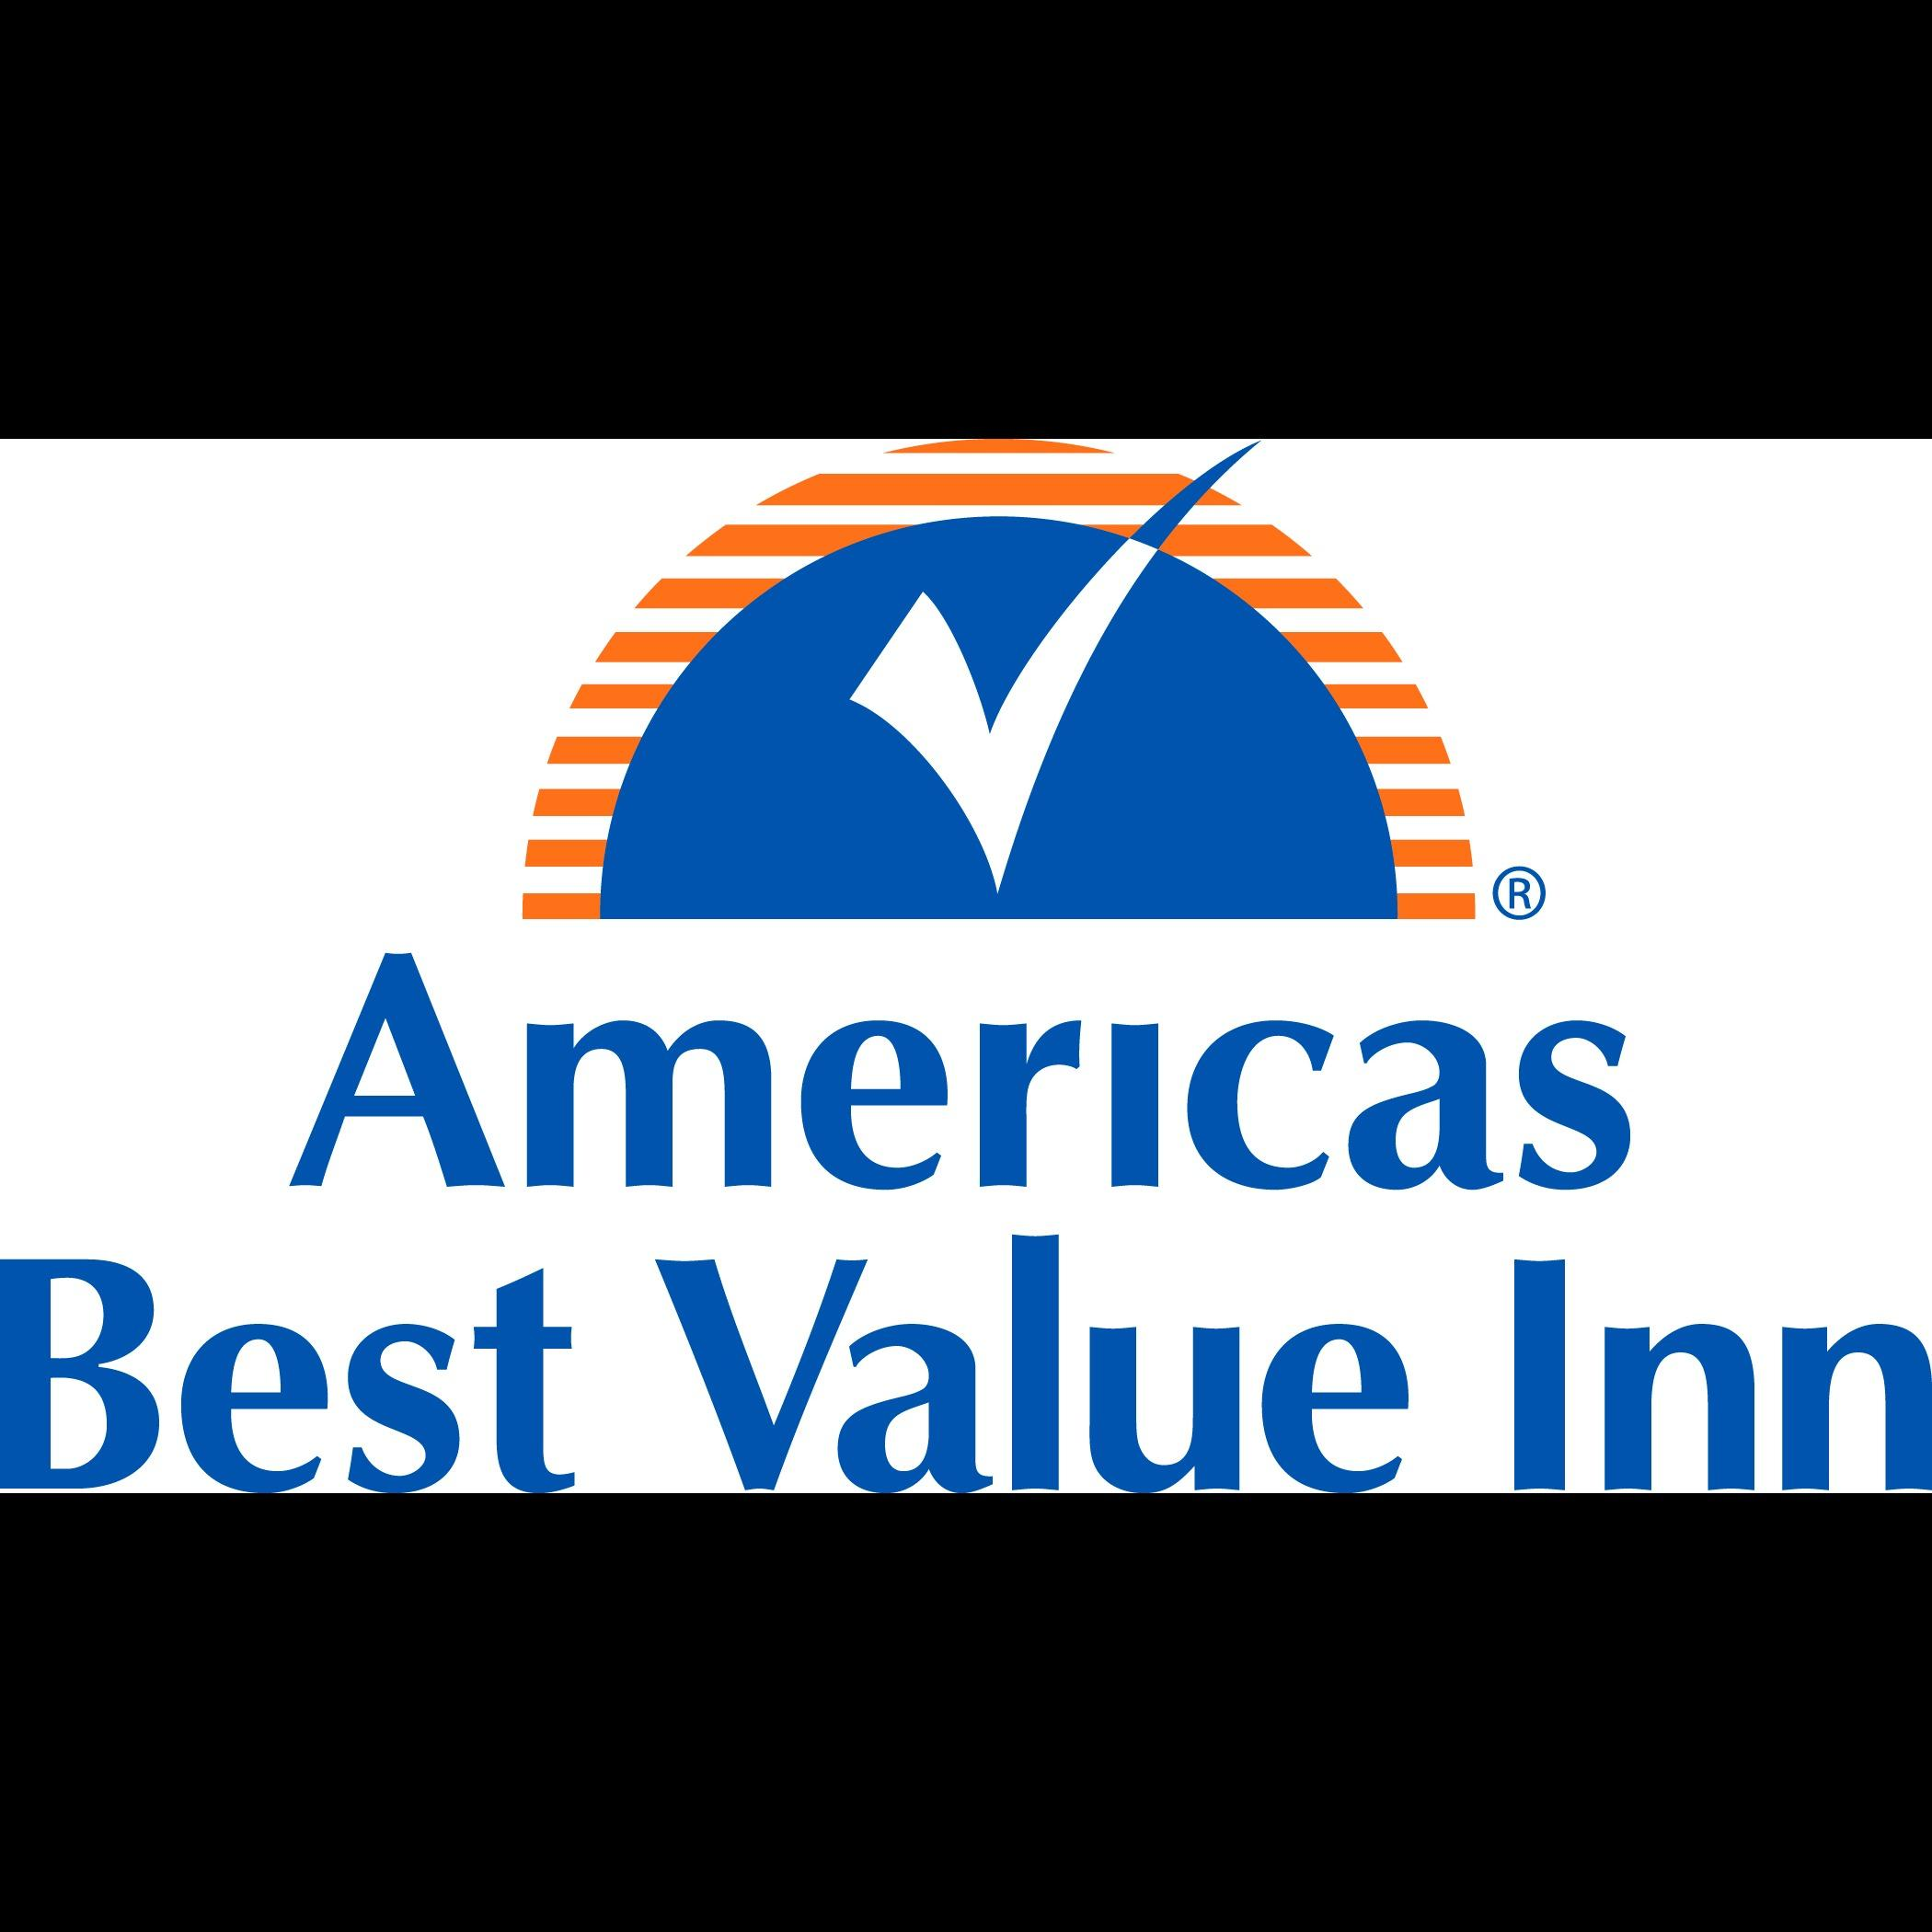 Americas Best Value Inn - Biddeford/Portland